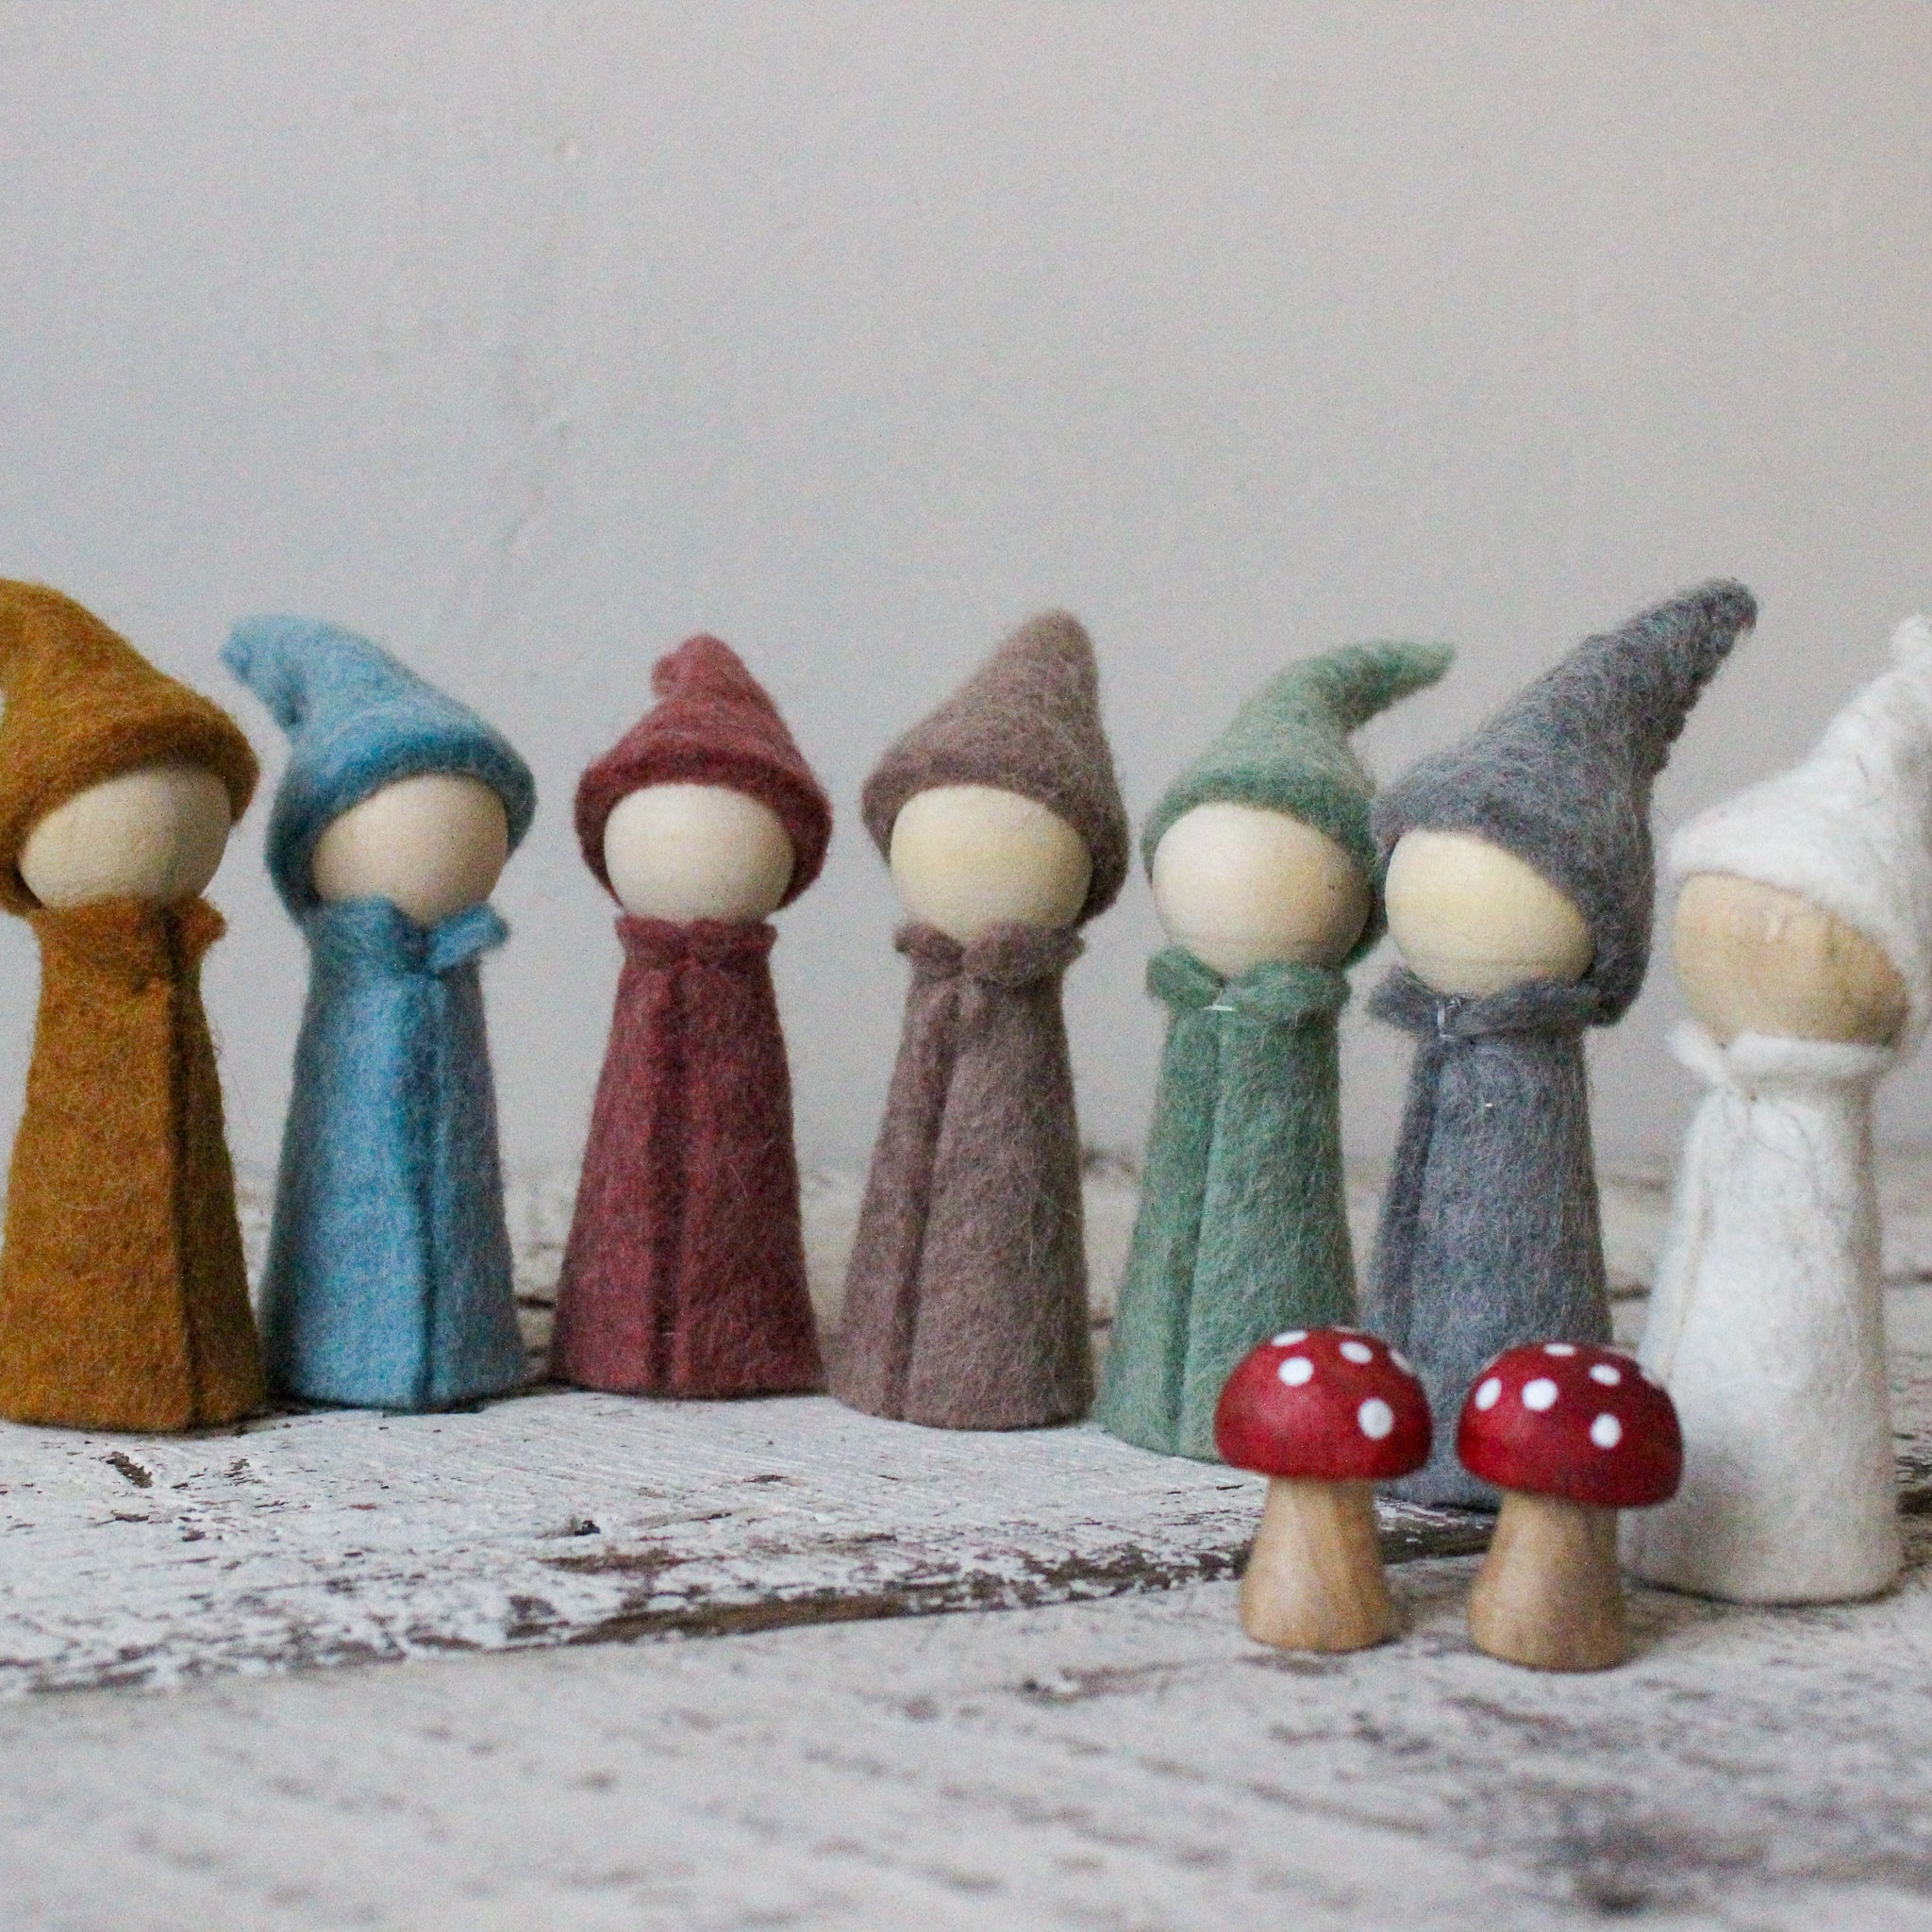 Felt and wood peg doll gnomes Steiner toys